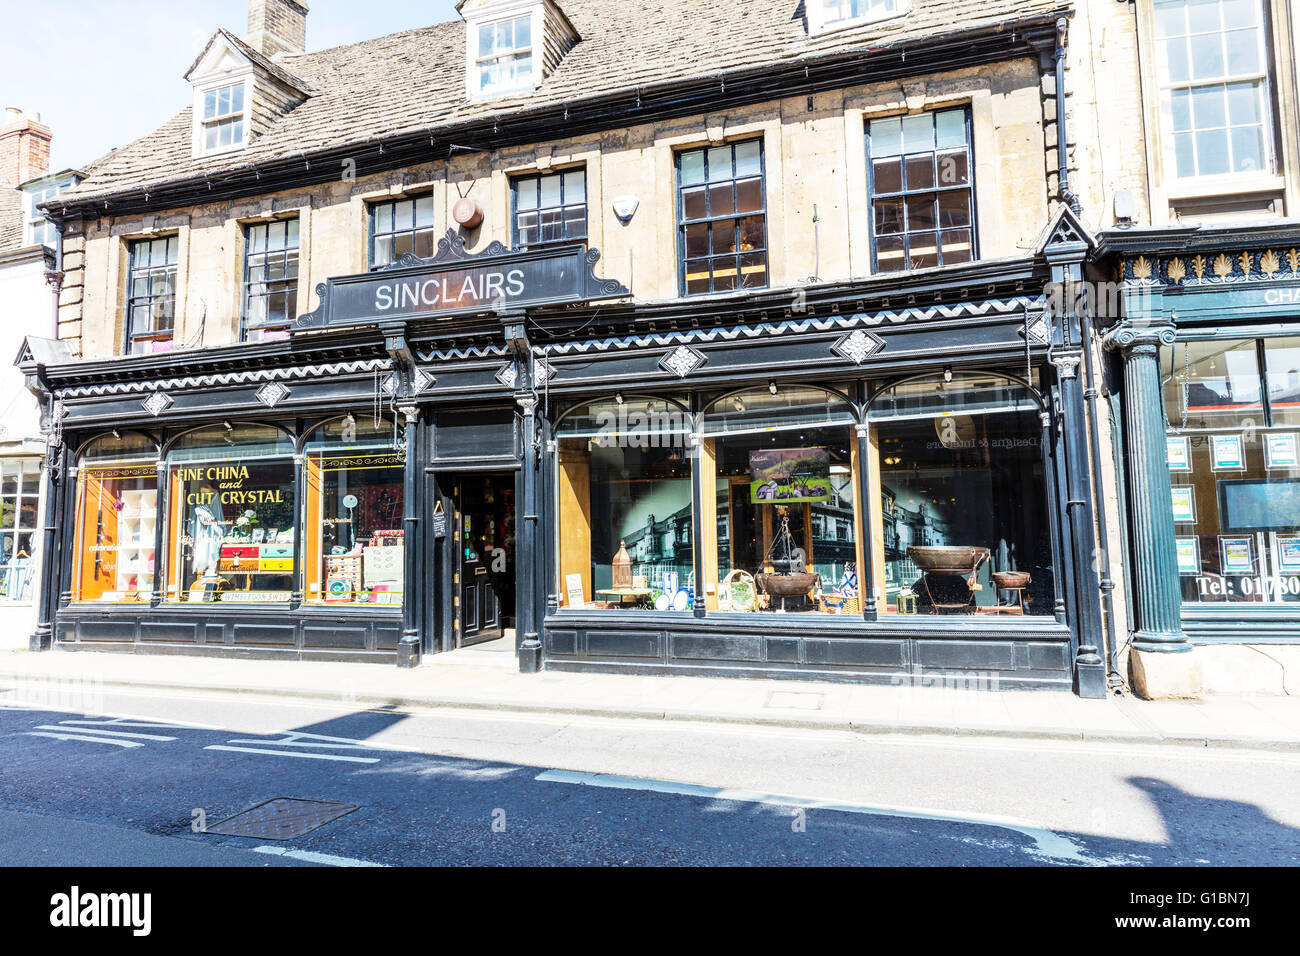 Sinclairs shop old fashioned shops bygones yesteryear shopping Stamford town Lincolnshire UK England English towns - Stock Image